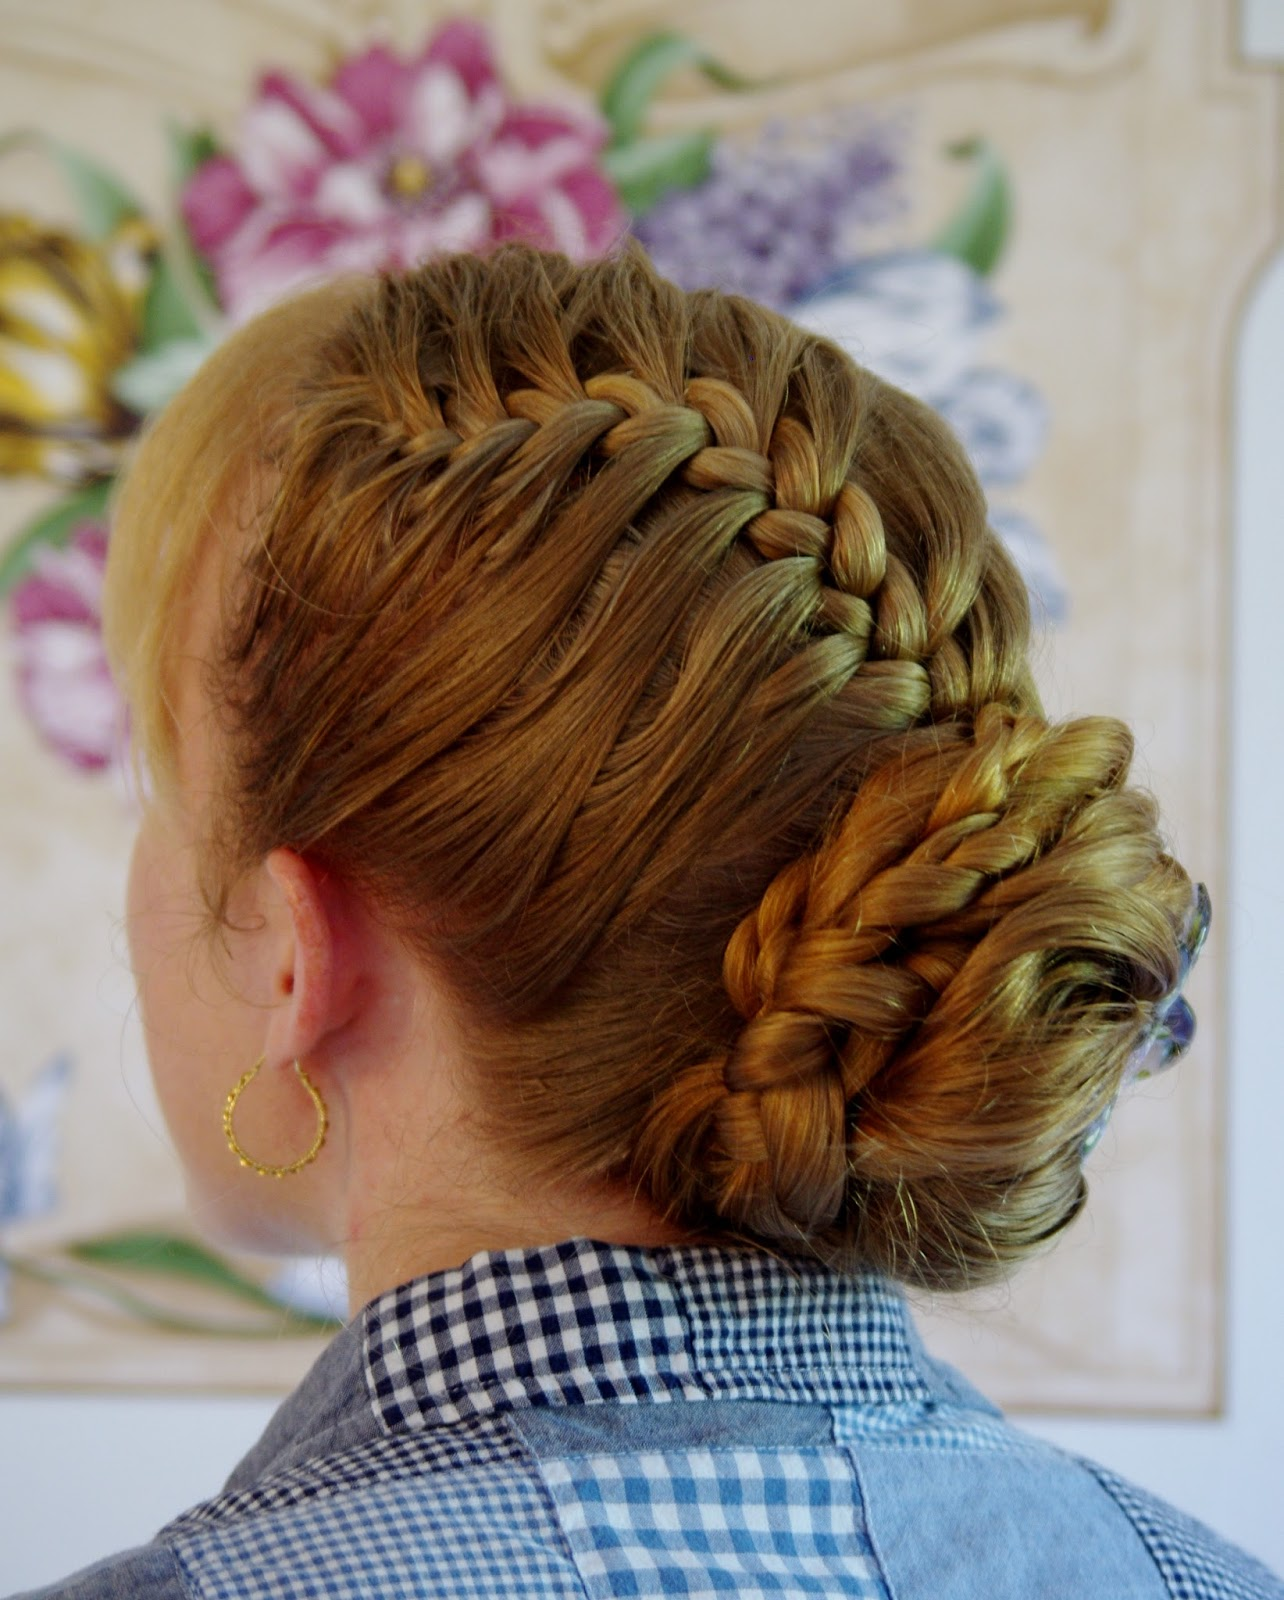 Plait Updo Hairstyles: Braids & Hairstyles For Super Long Hair: Half-Updo French